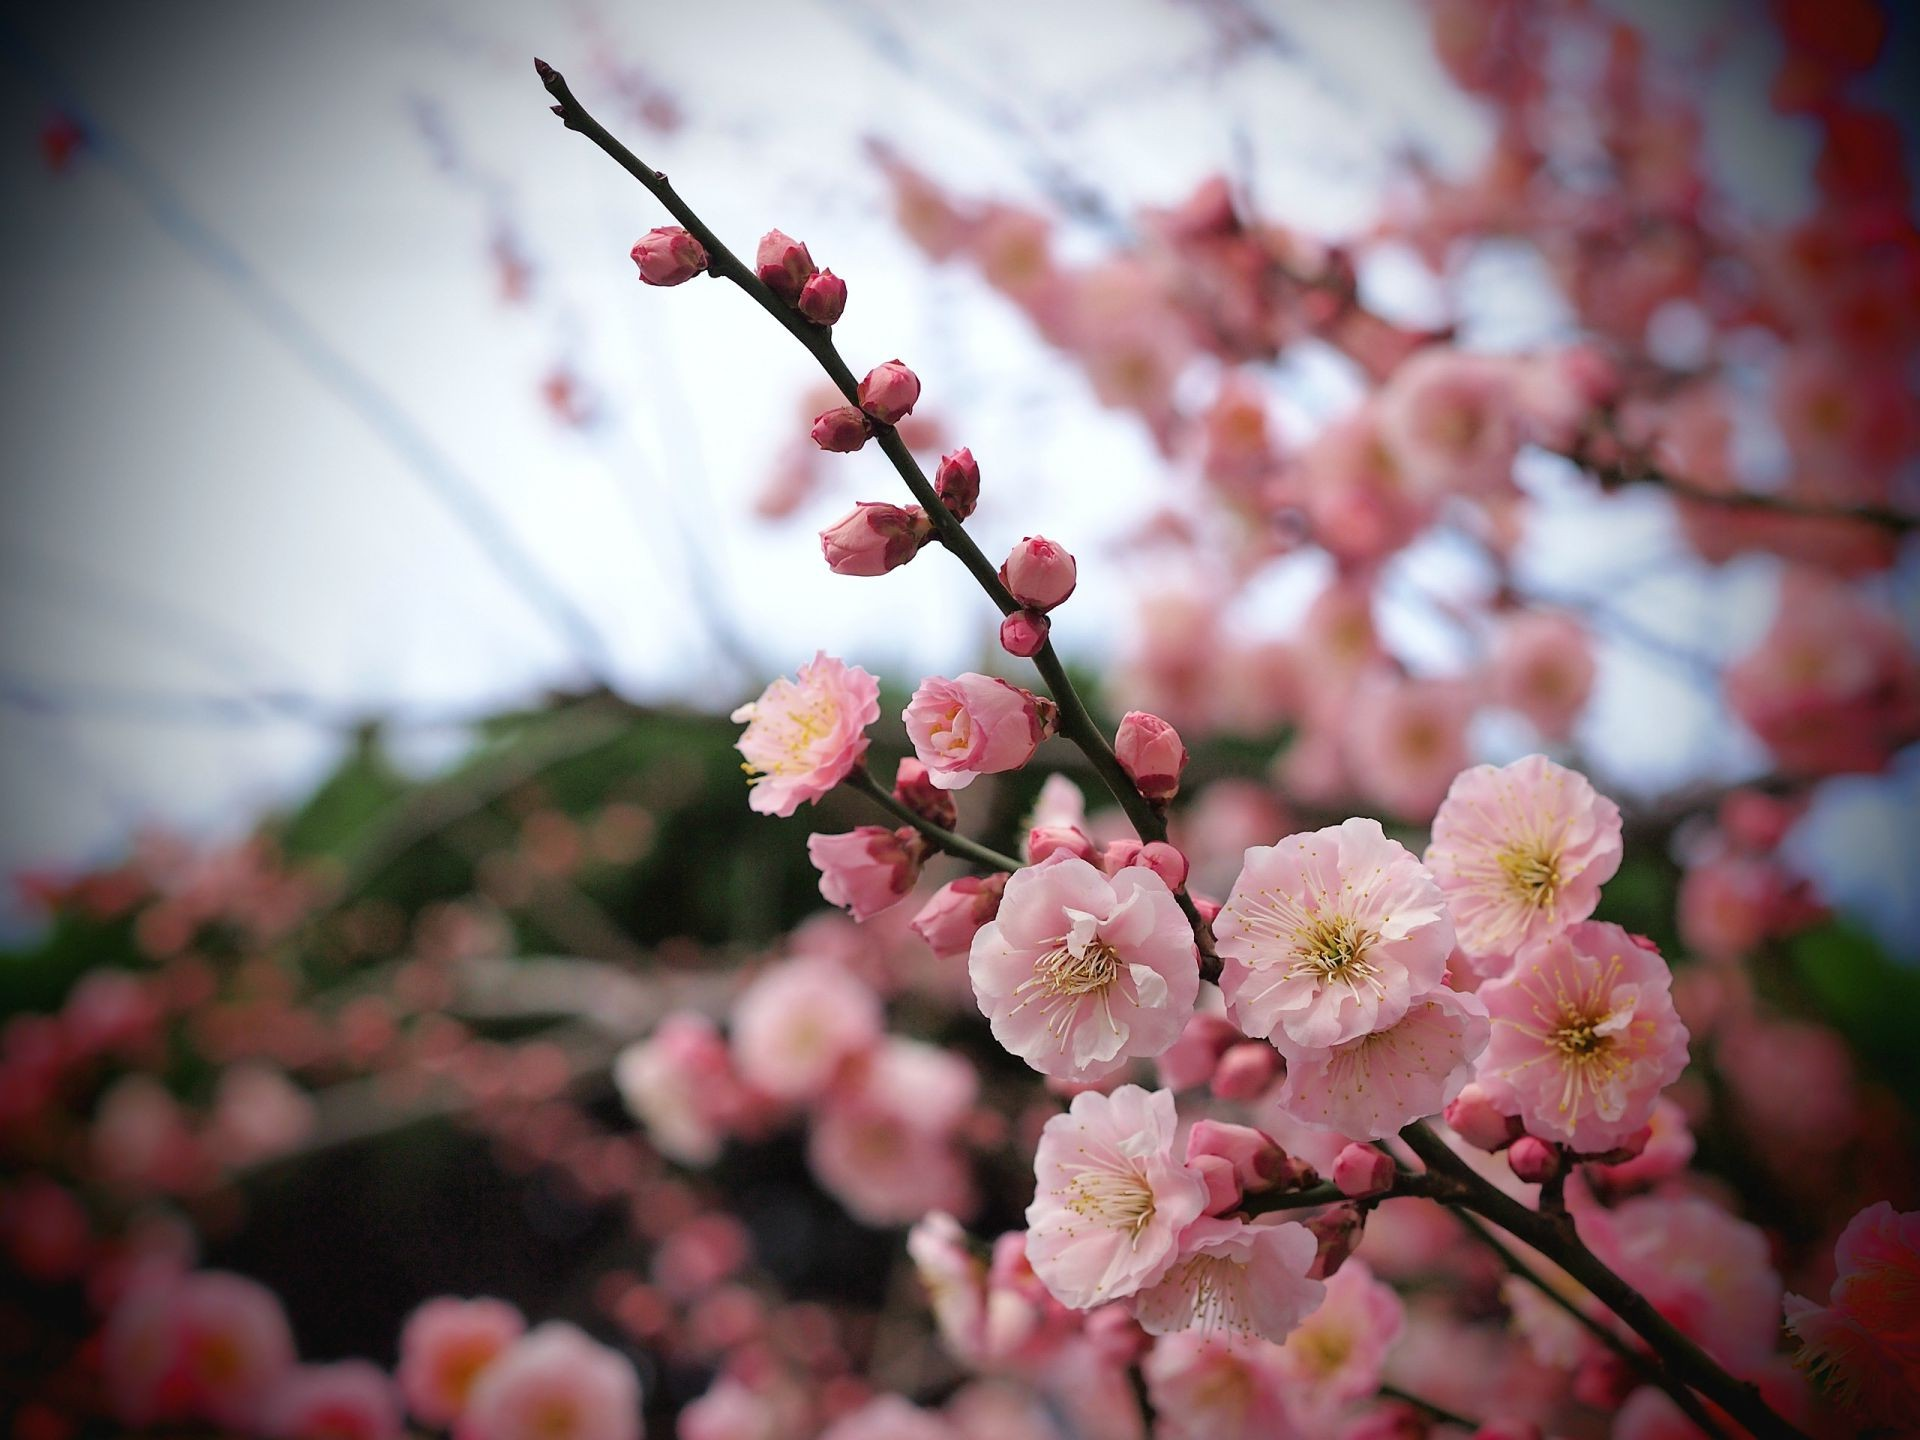 flowers petals Tree branch pink apricot